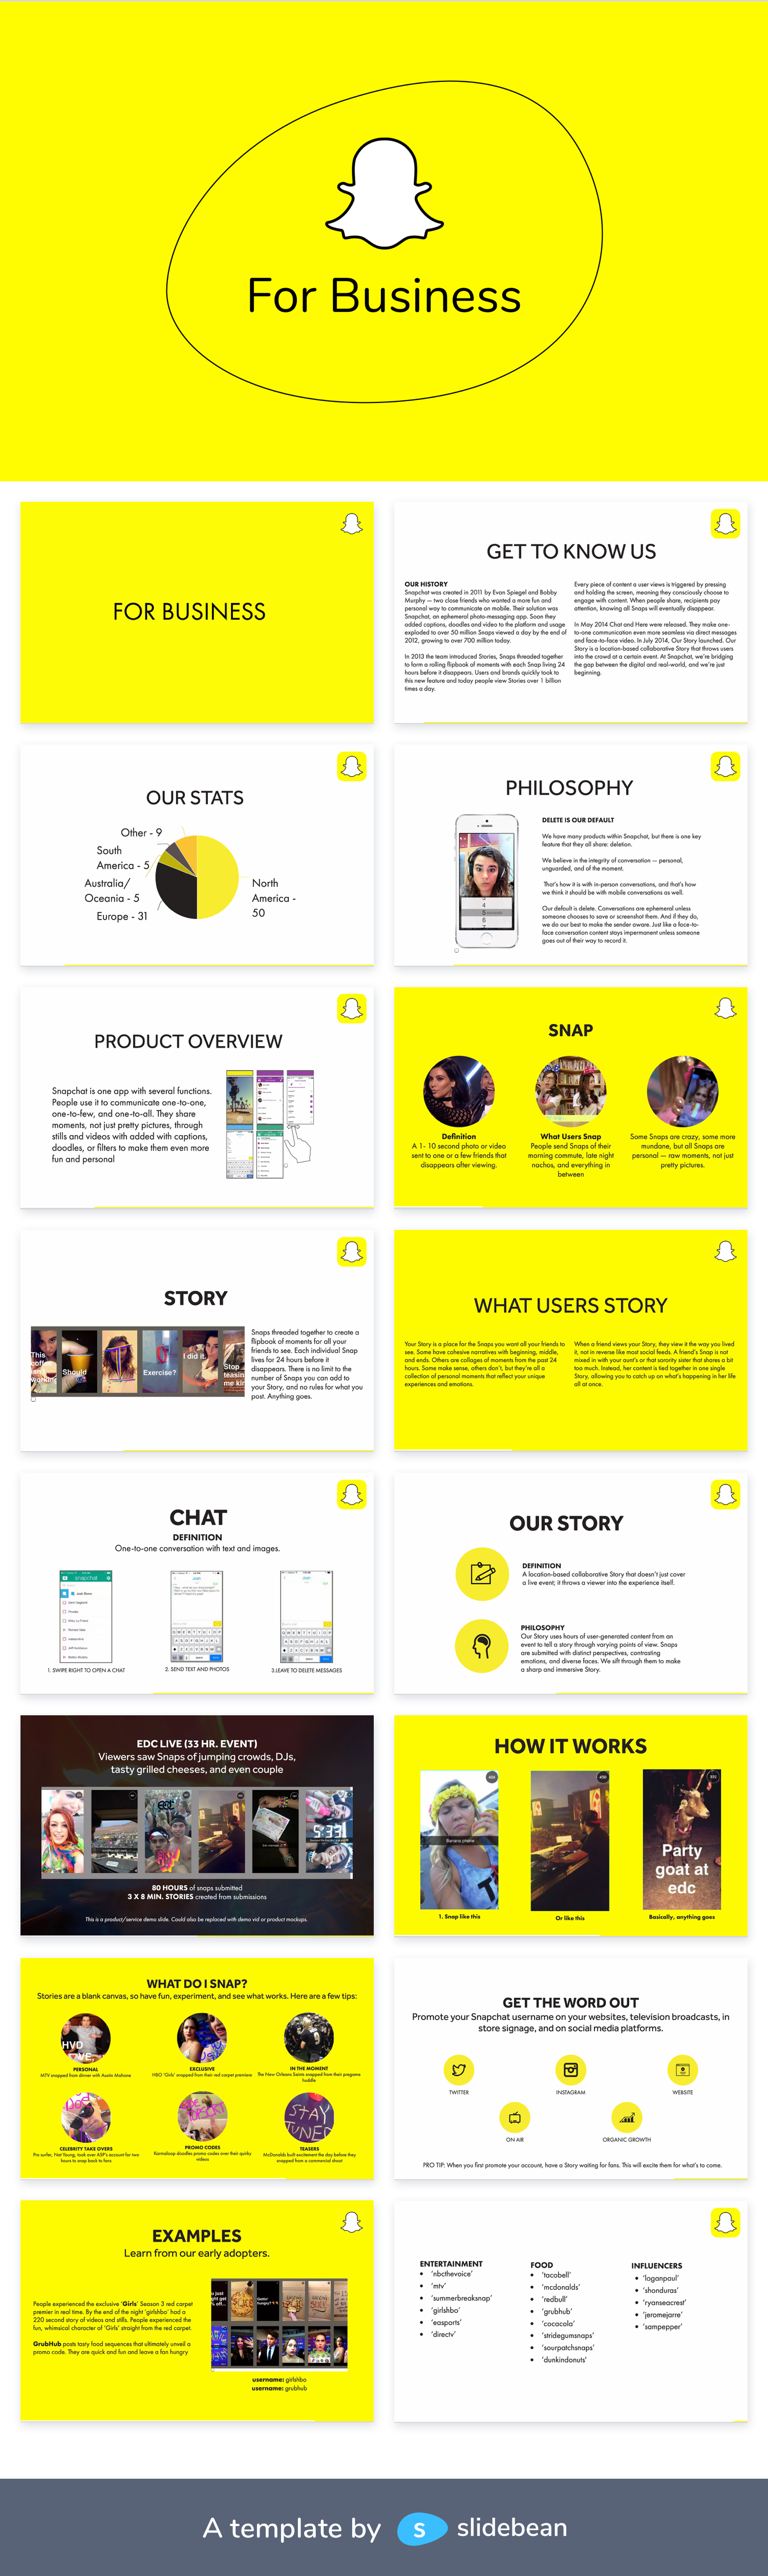 Snapchat Pitch Deck Template Free Pdf Ppt Download Slidebean Label Templates Templates Card Template